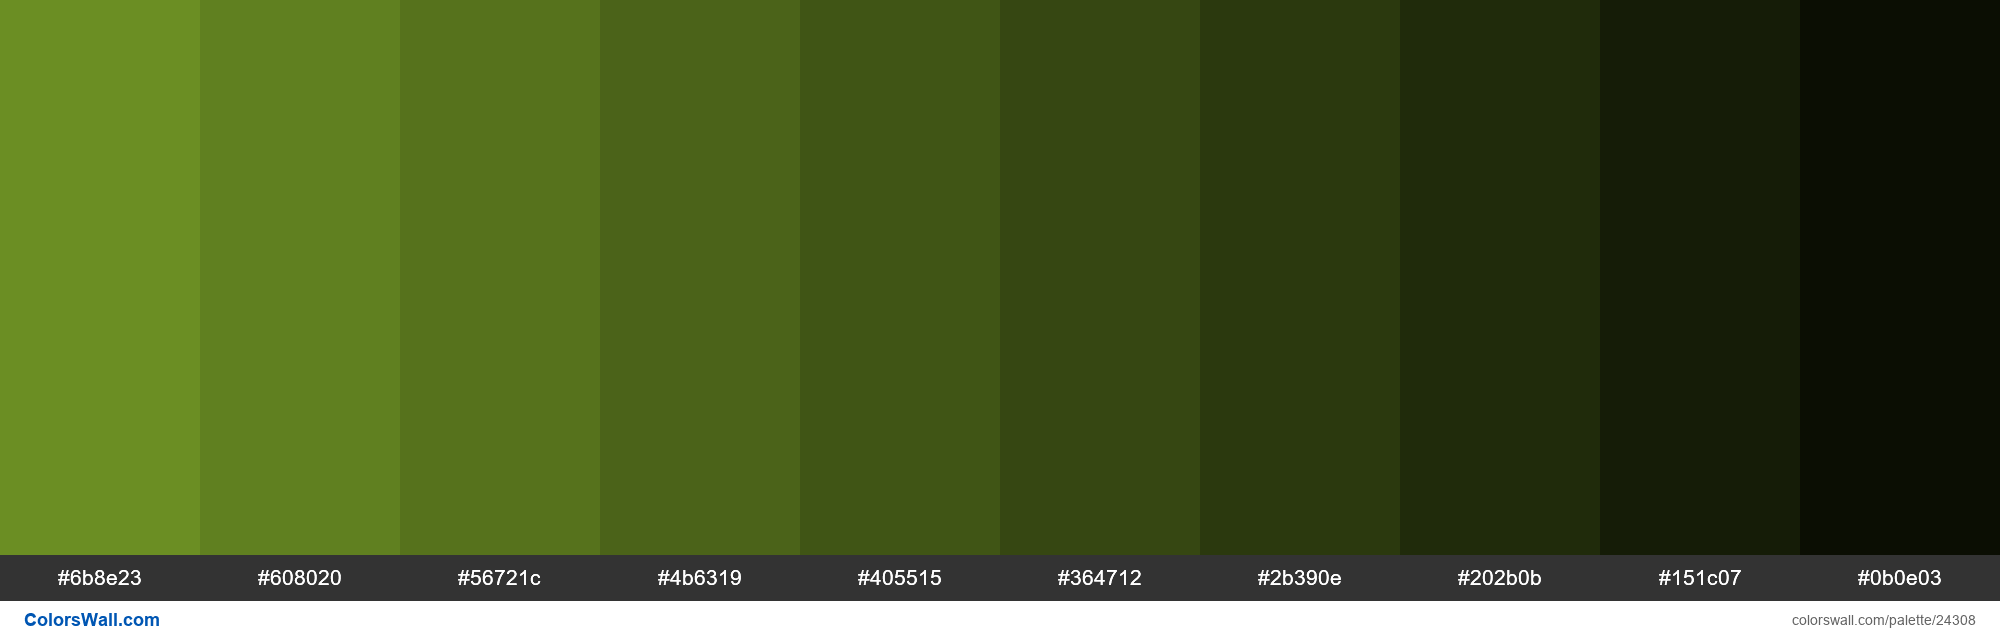 Shades of Olive Drab #6B8E23 hex color - #24308